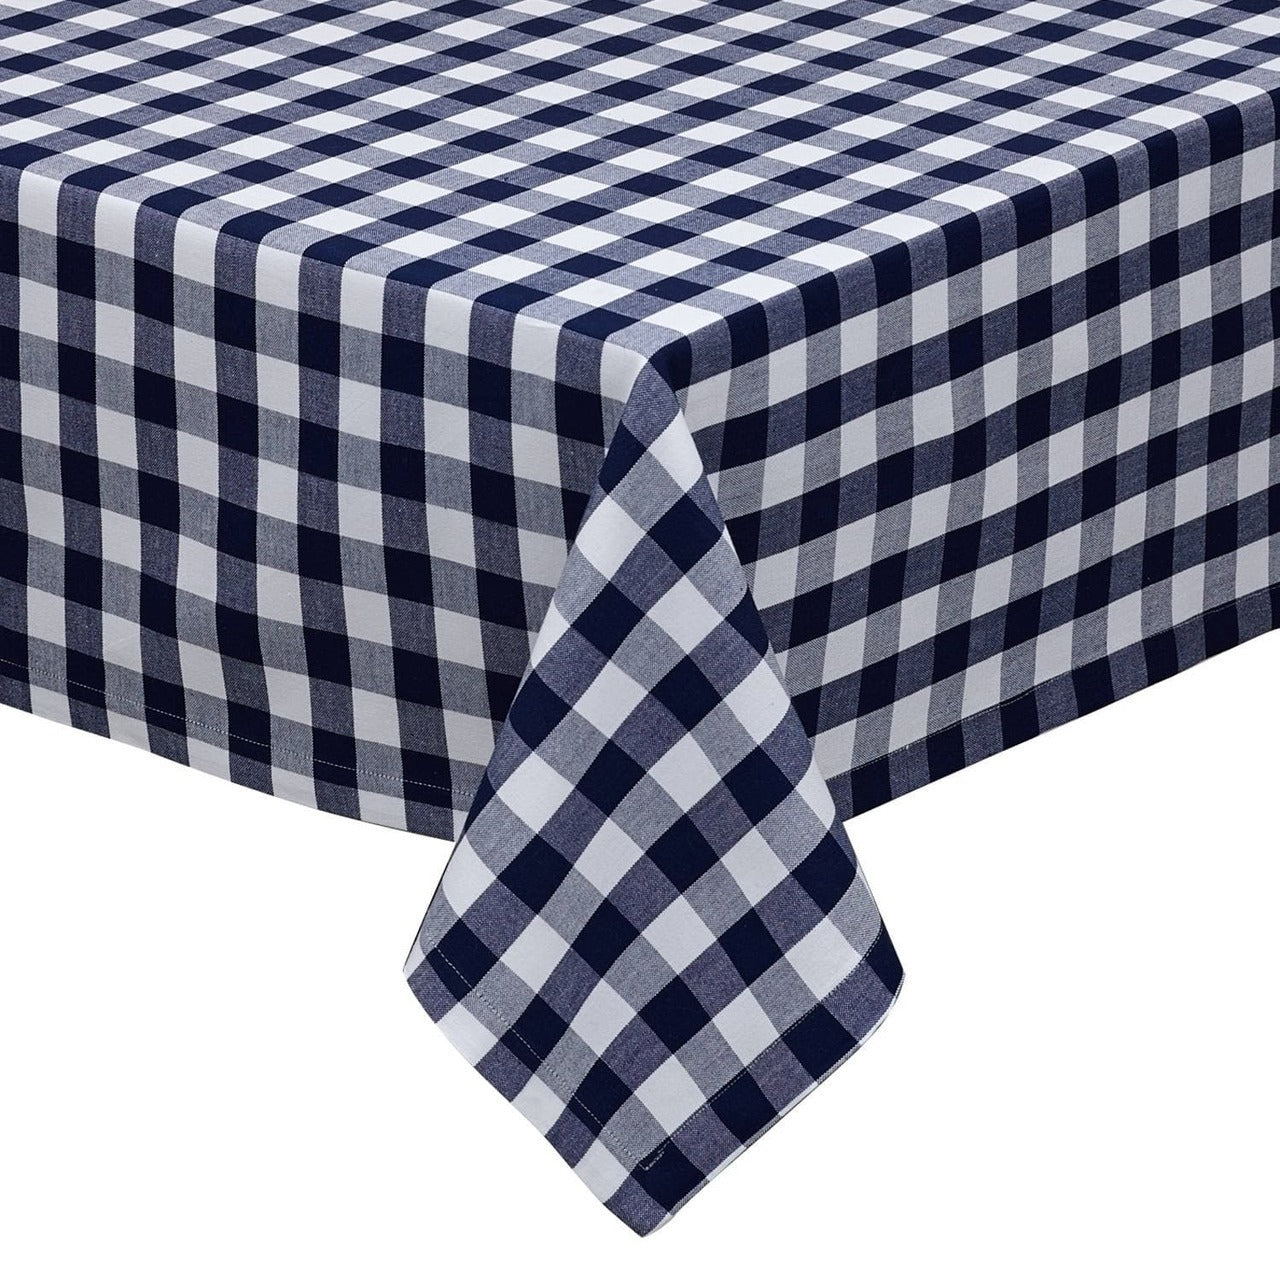 Gingham Tablecloth In Navy